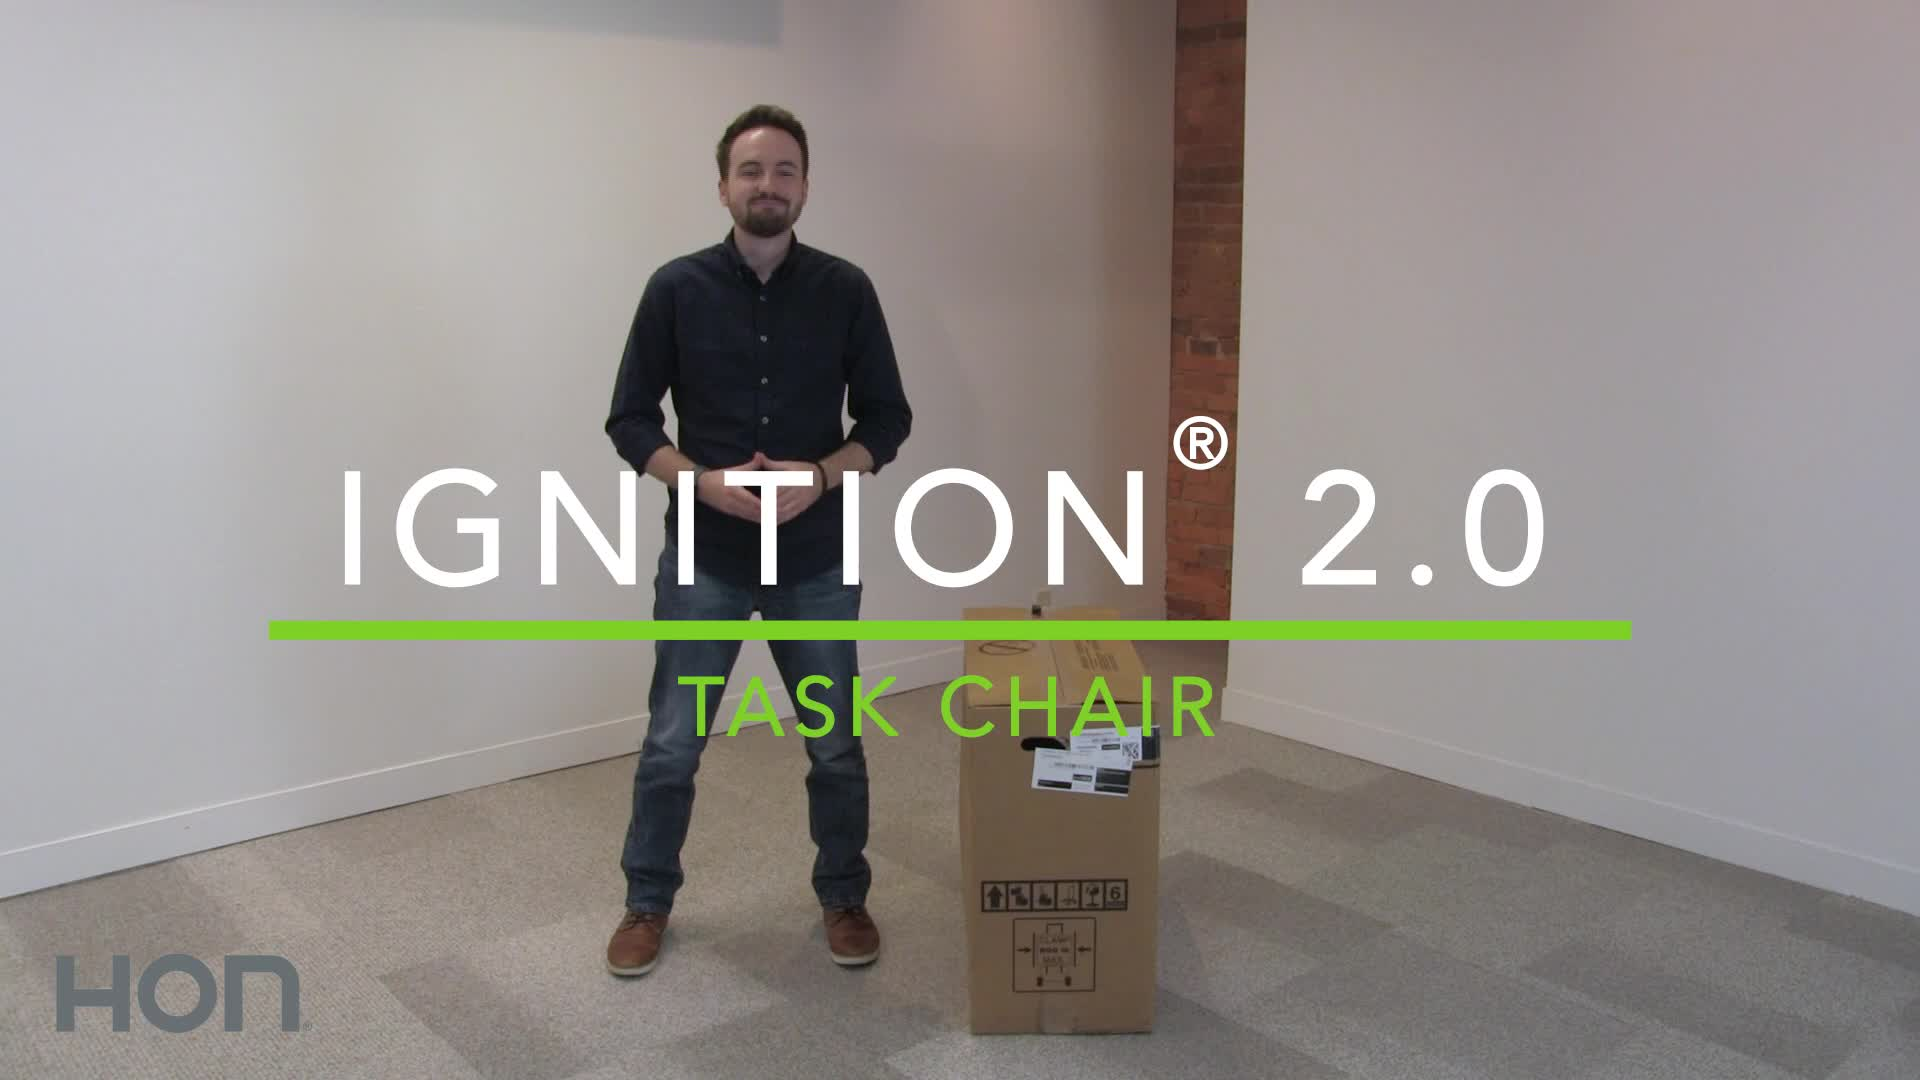 Ignition 2.0 Task Chair Installation video link